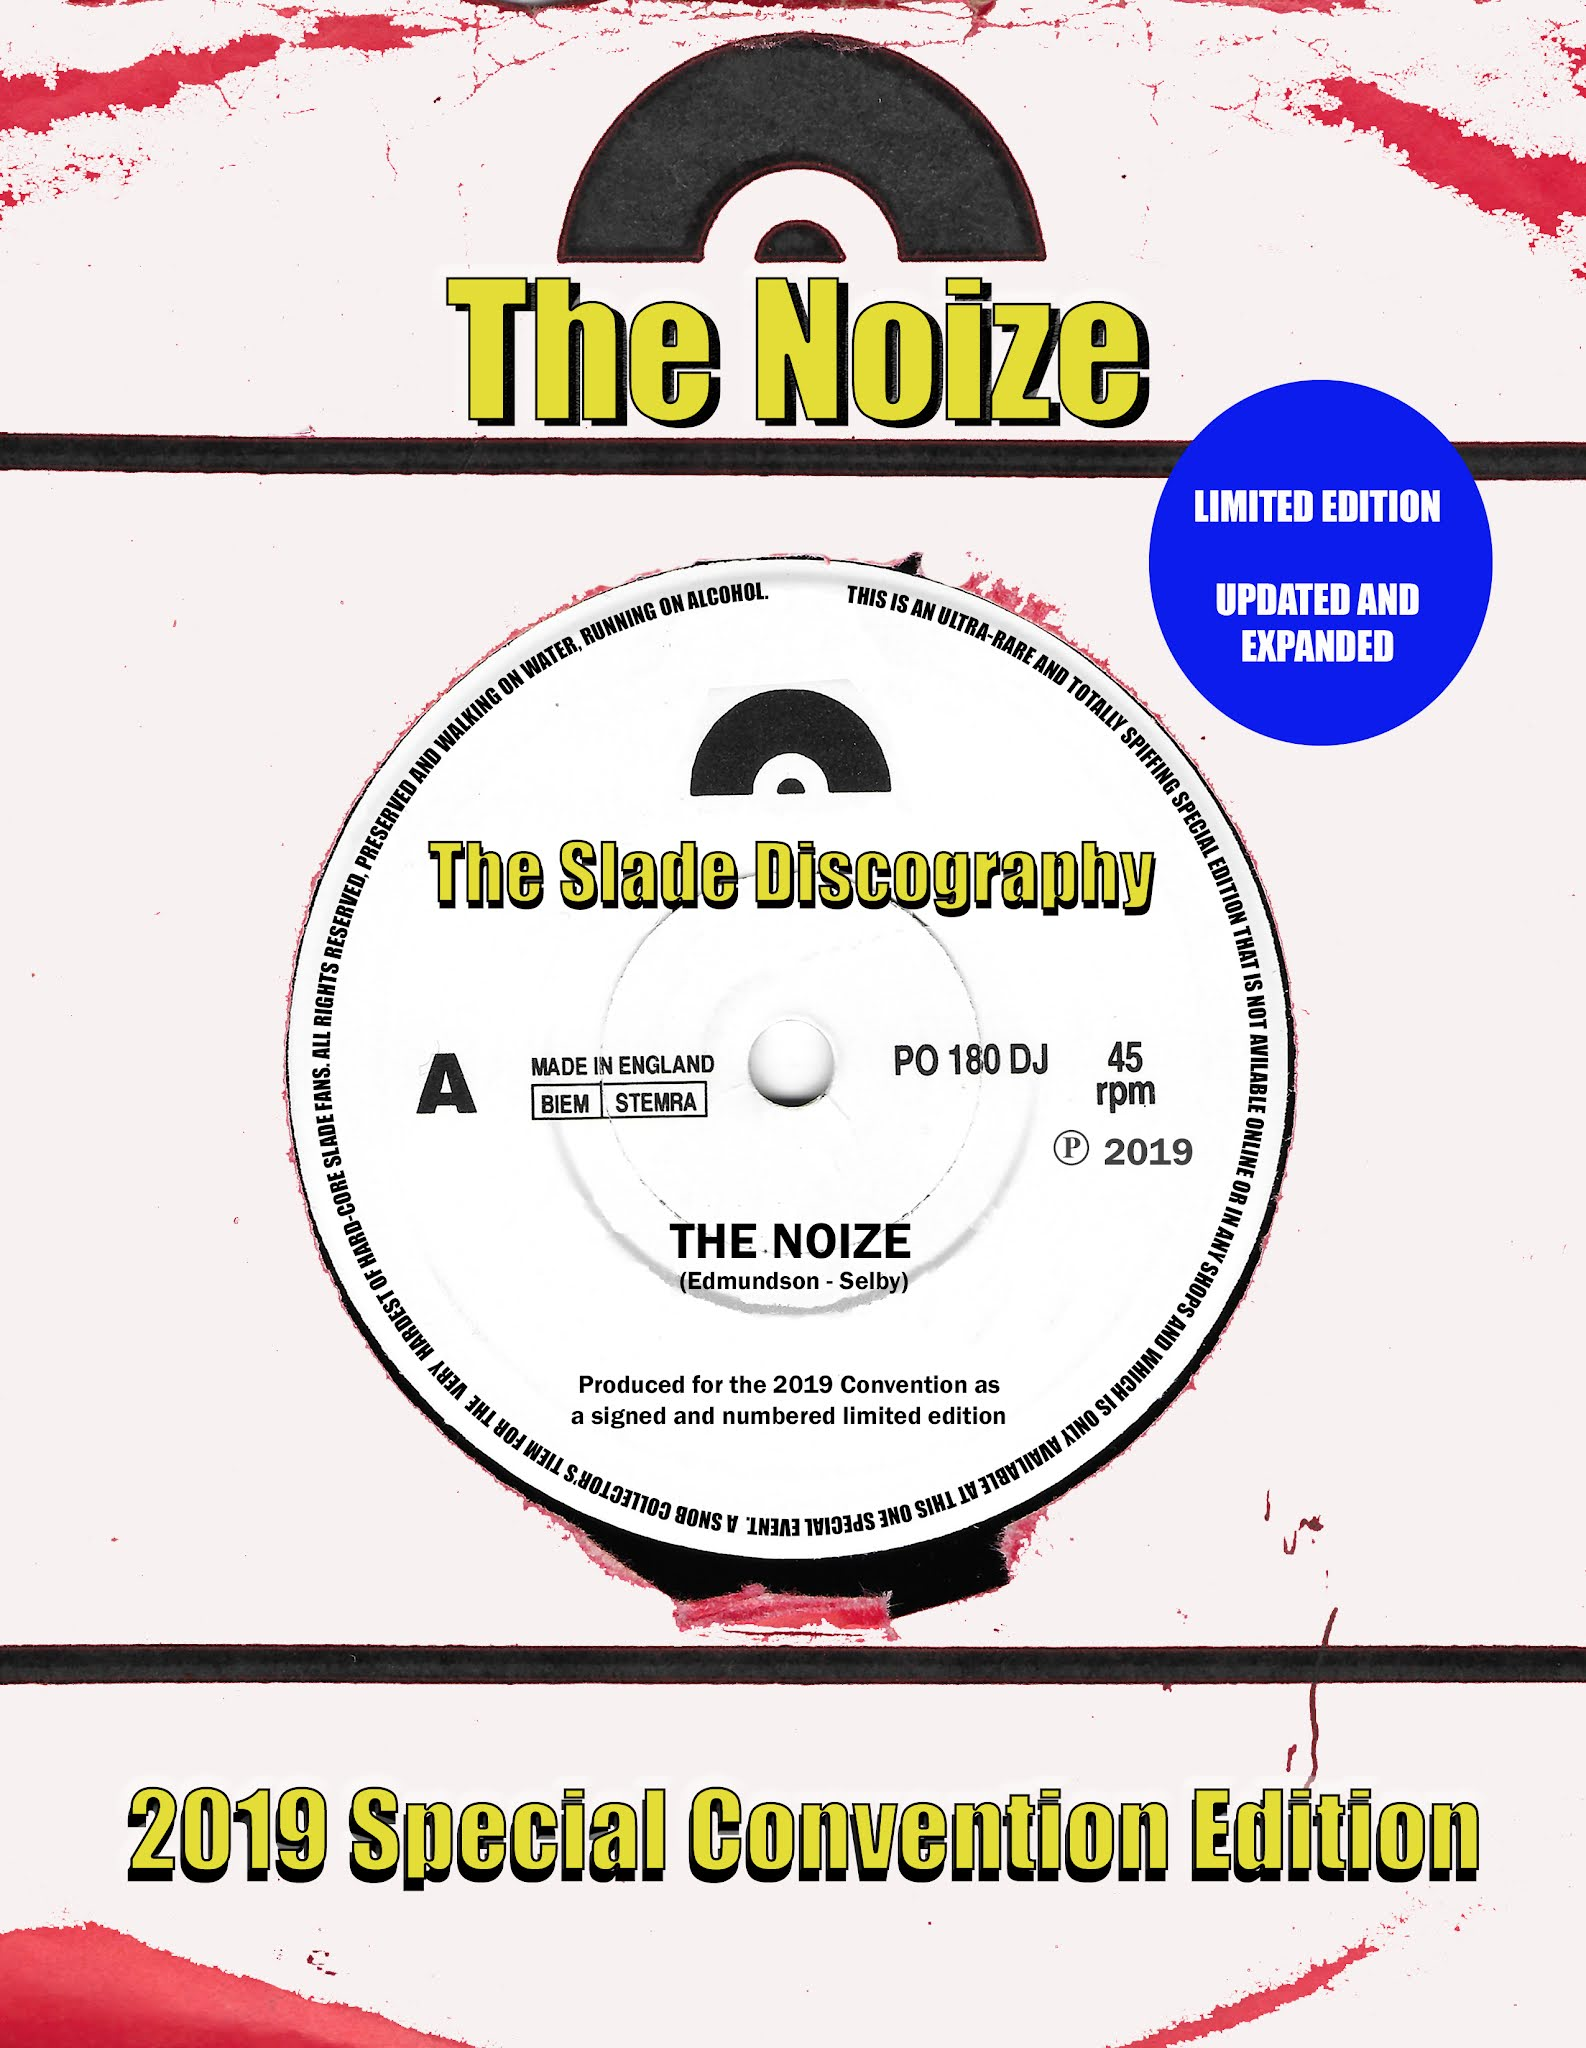 THE NOIZE 2019 CONVENTION EDITION